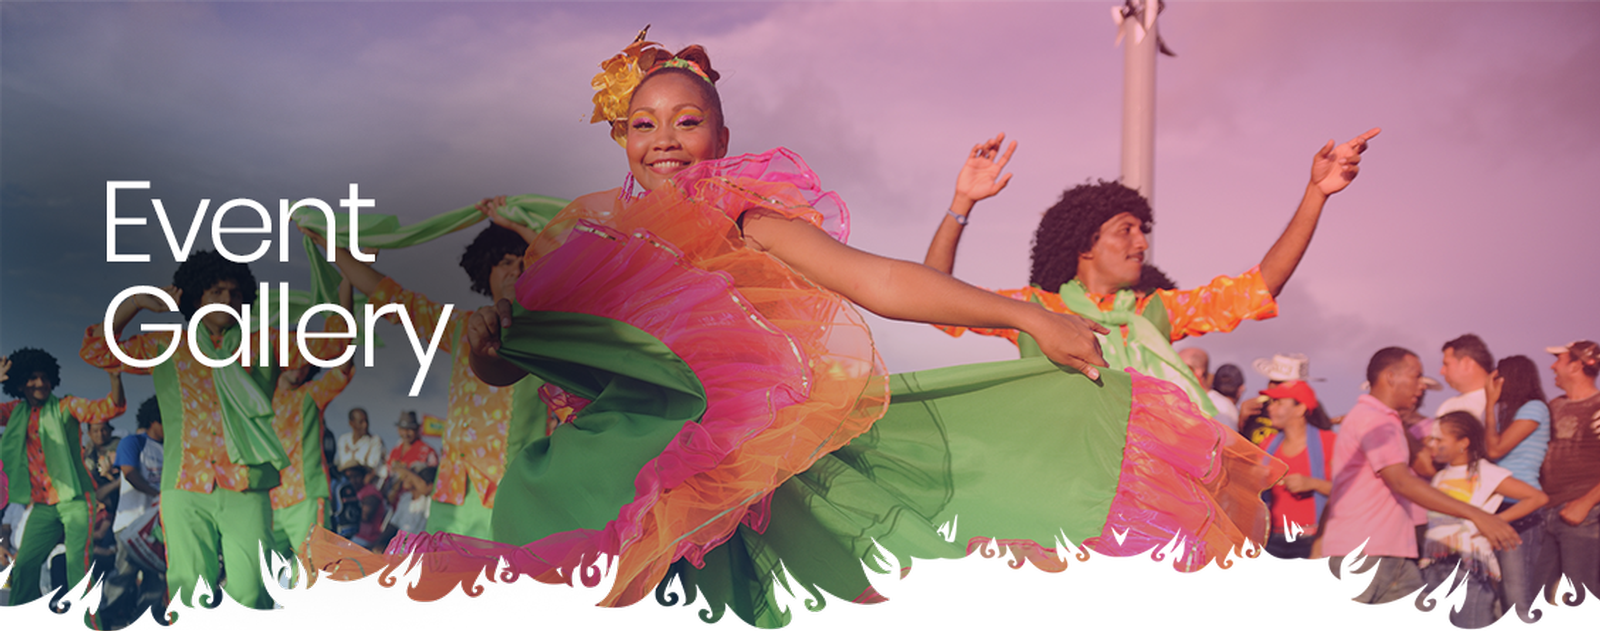 Contemporary Caribbean Arts and Culture Festival at Durham Carifest - Ajax Caribbean Day Carnival